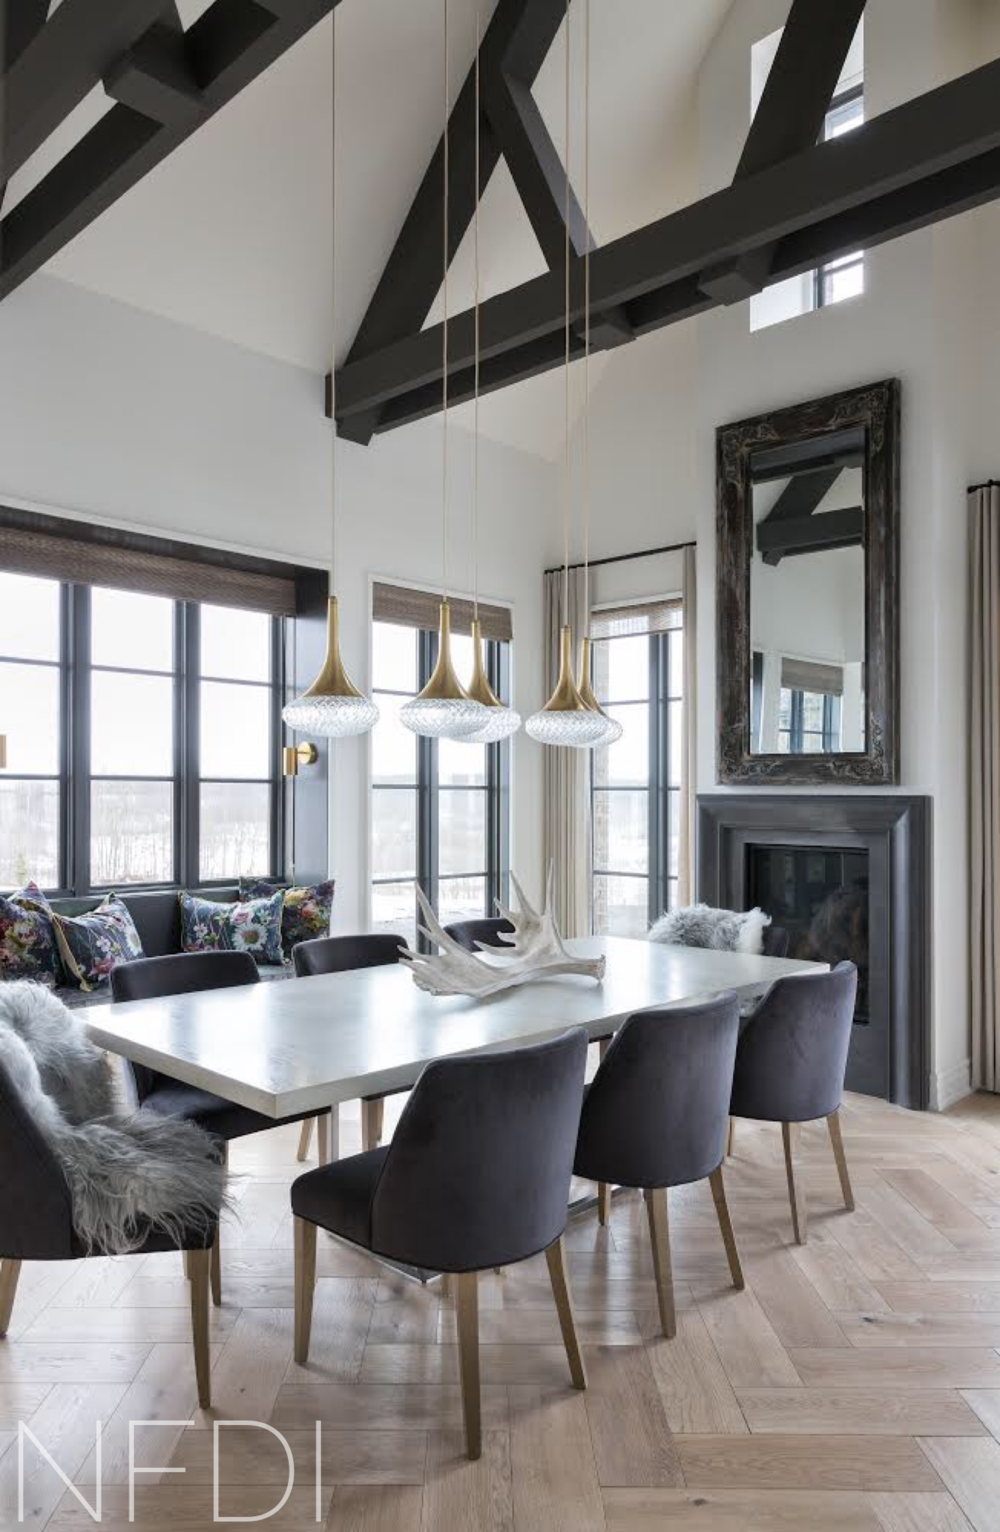 Country House Dining Room, Calgary Interior Designer, Nyla Free Designs, DeJong Design Associates, Photographed by Phil Crozier